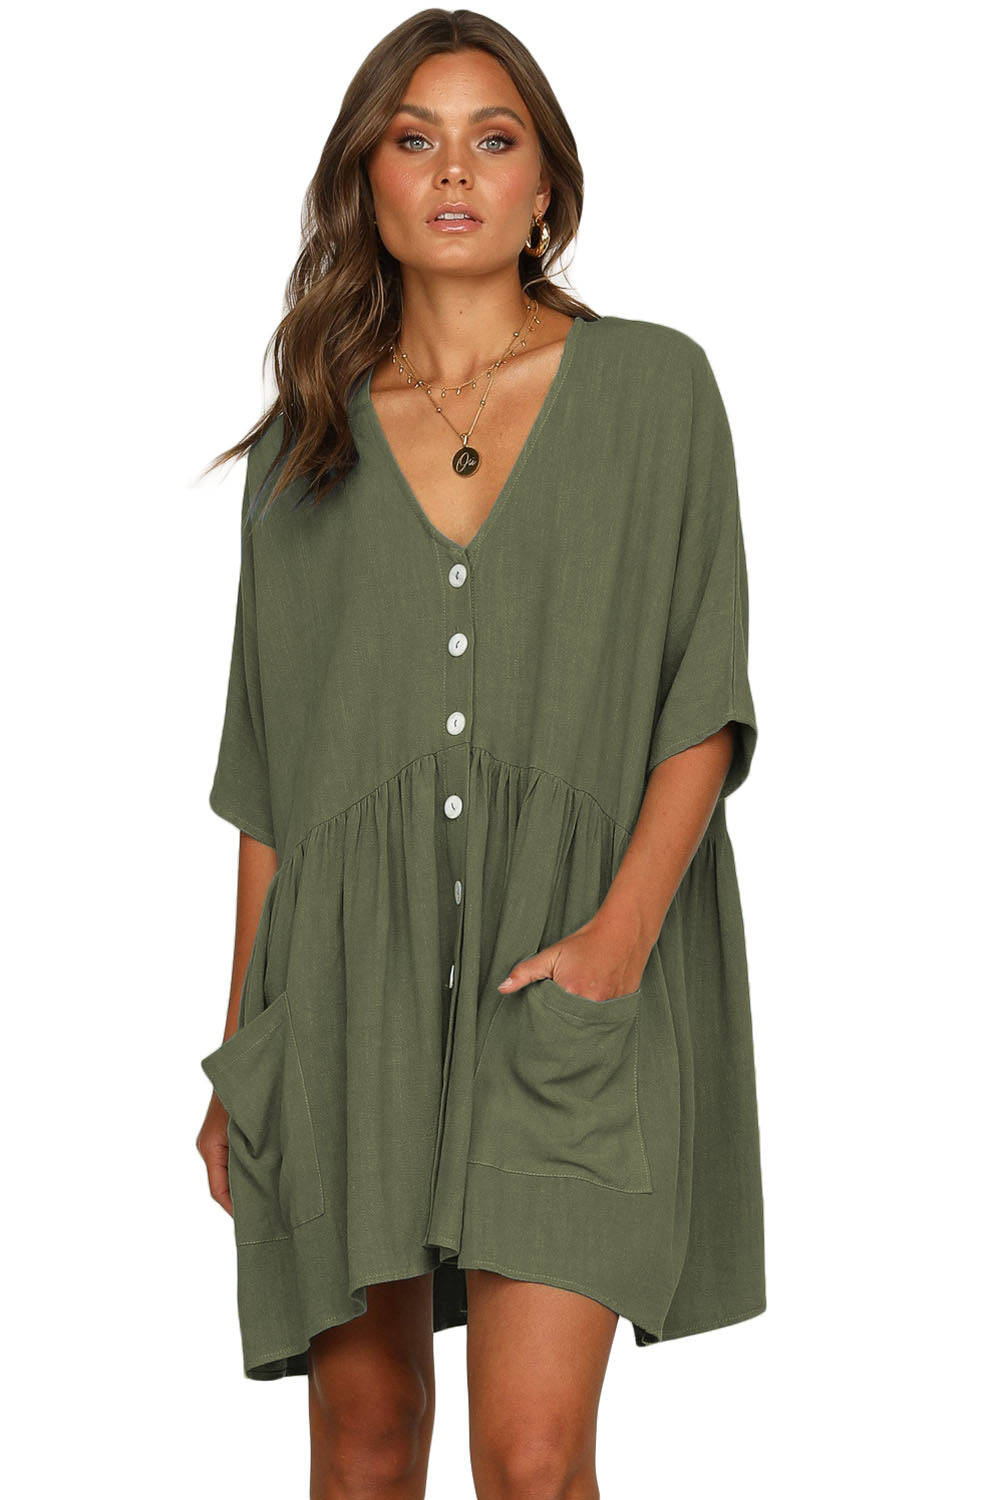 Green Natural Beauty Dress